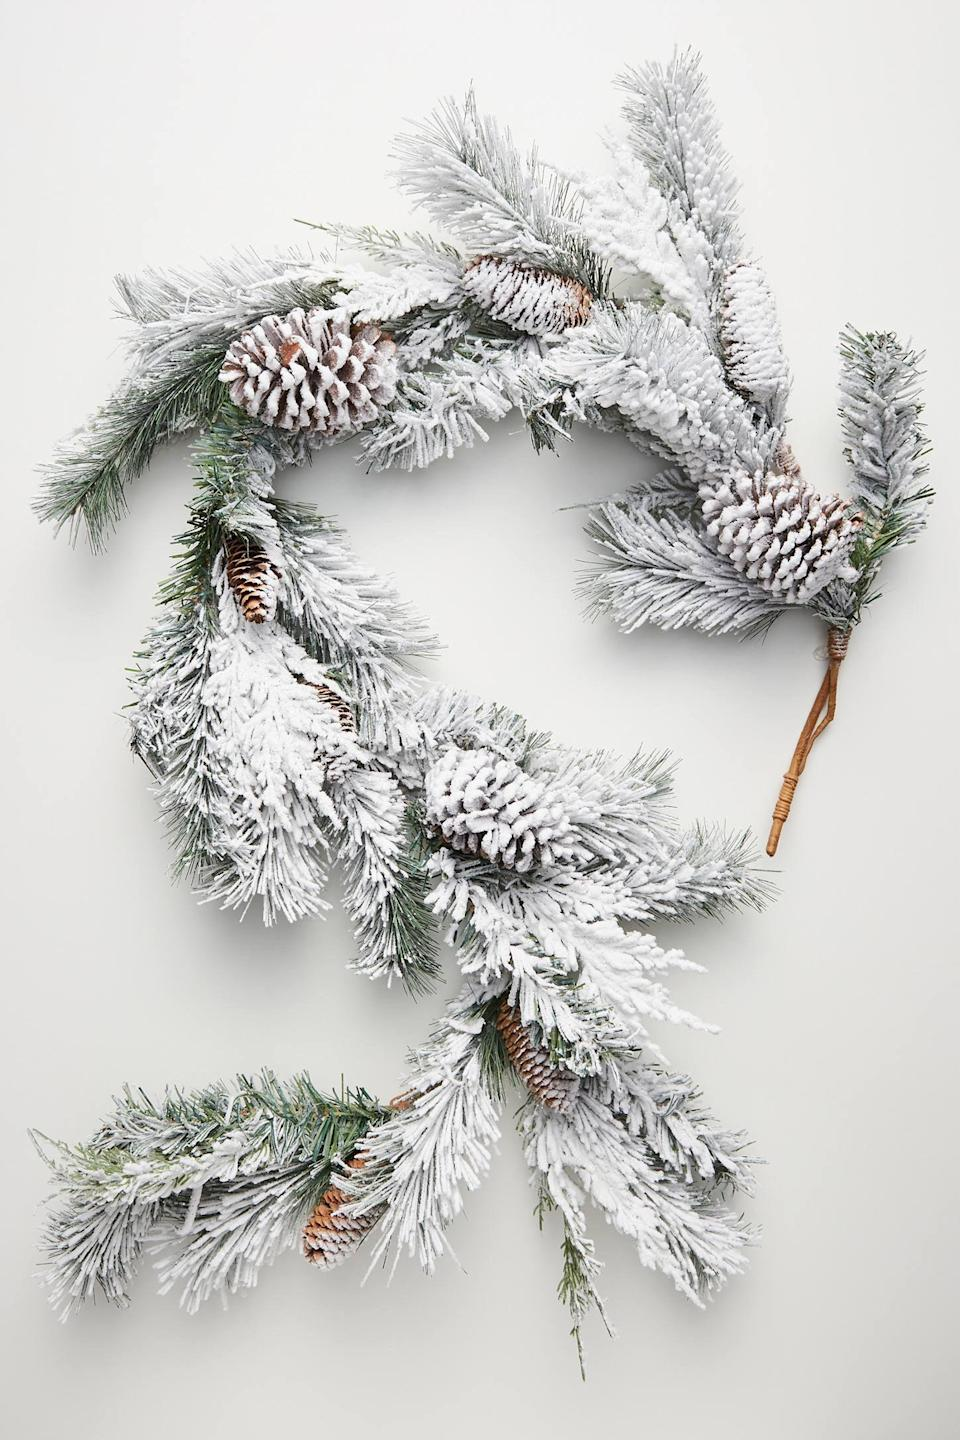 """<p>Bring the brisk outdoor air into your interior with the <a href=""""https://www.popsugar.com/buy/Snowy-Pinecone-Garland-490557?p_name=Snowy%20Pinecone%20Garland&retailer=anthropologie.com&pid=490557&price=78&evar1=casa%3Aus&evar9=46615300&evar98=https%3A%2F%2Fwww.popsugar.com%2Fhome%2Fphoto-gallery%2F46615300%2Fimage%2F46615428%2FSnowy-Pinecone-Garland&list1=shopping%2Canthropologie%2Choliday%2Cchristmas%2Cchristmas%20decorations%2Choliday%20decor%2Chome%20shopping&prop13=mobile&pdata=1"""" rel=""""nofollow noopener"""" class=""""link rapid-noclick-resp"""" target=""""_blank"""" data-ylk=""""slk:Snowy Pinecone Garland"""">Snowy Pinecone Garland</a> ($78).</p>"""